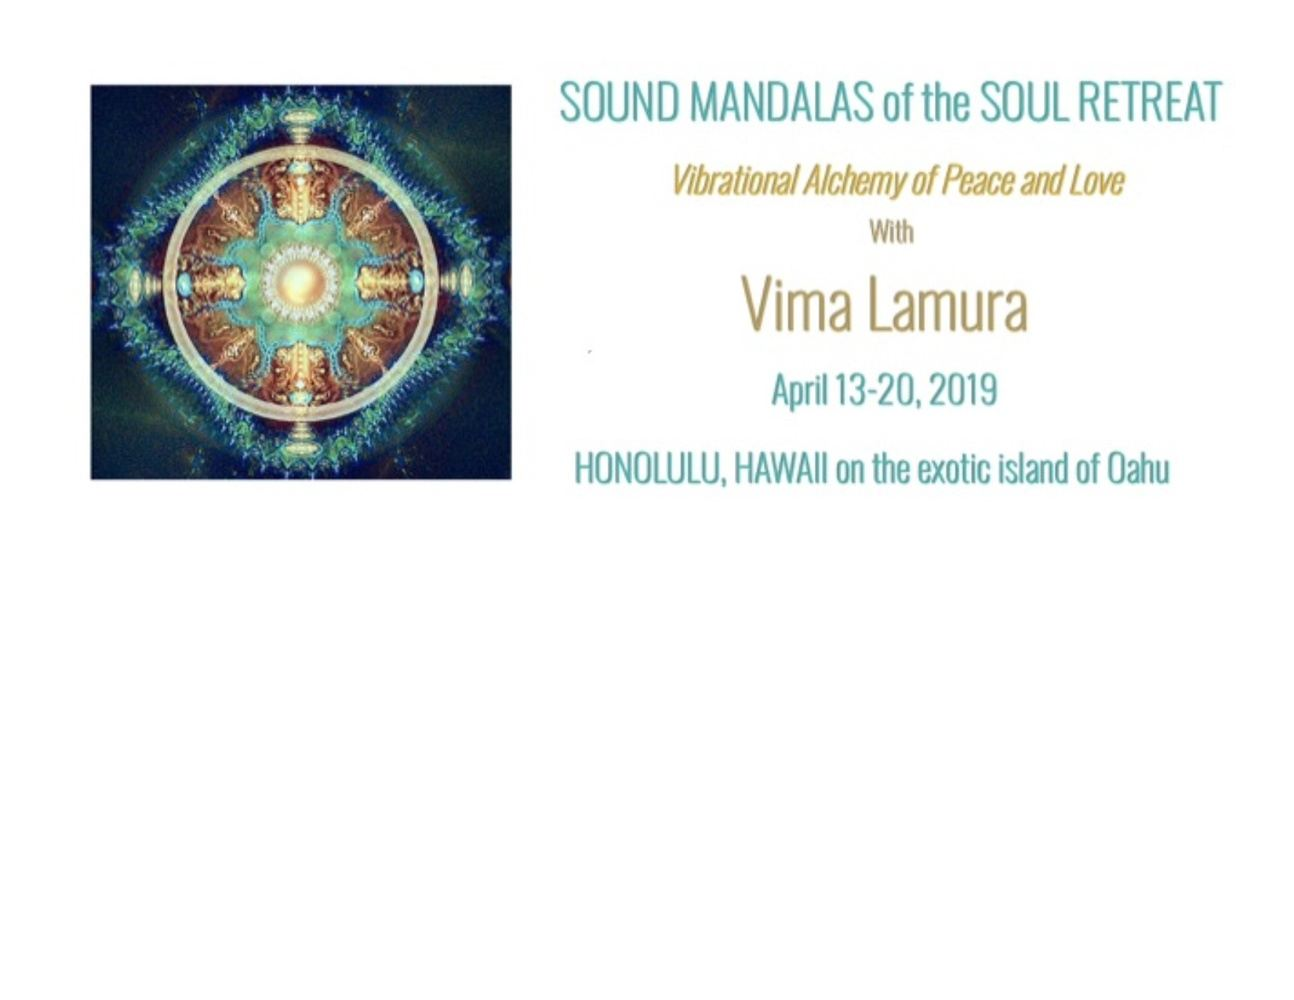 Sound Mandalas of the Soul